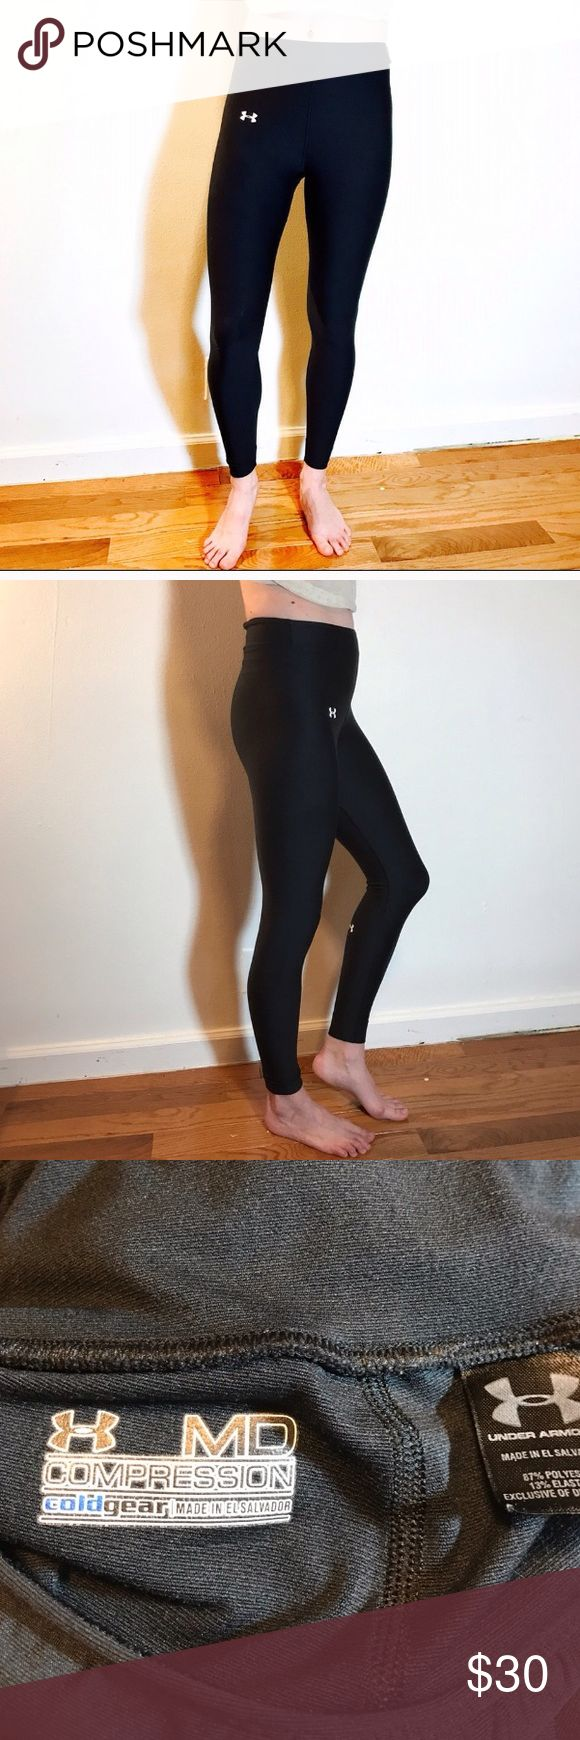 Under Armor compression leggings They say they are a size medium, but fit like a small or xs. Under Armour Pants Leggings